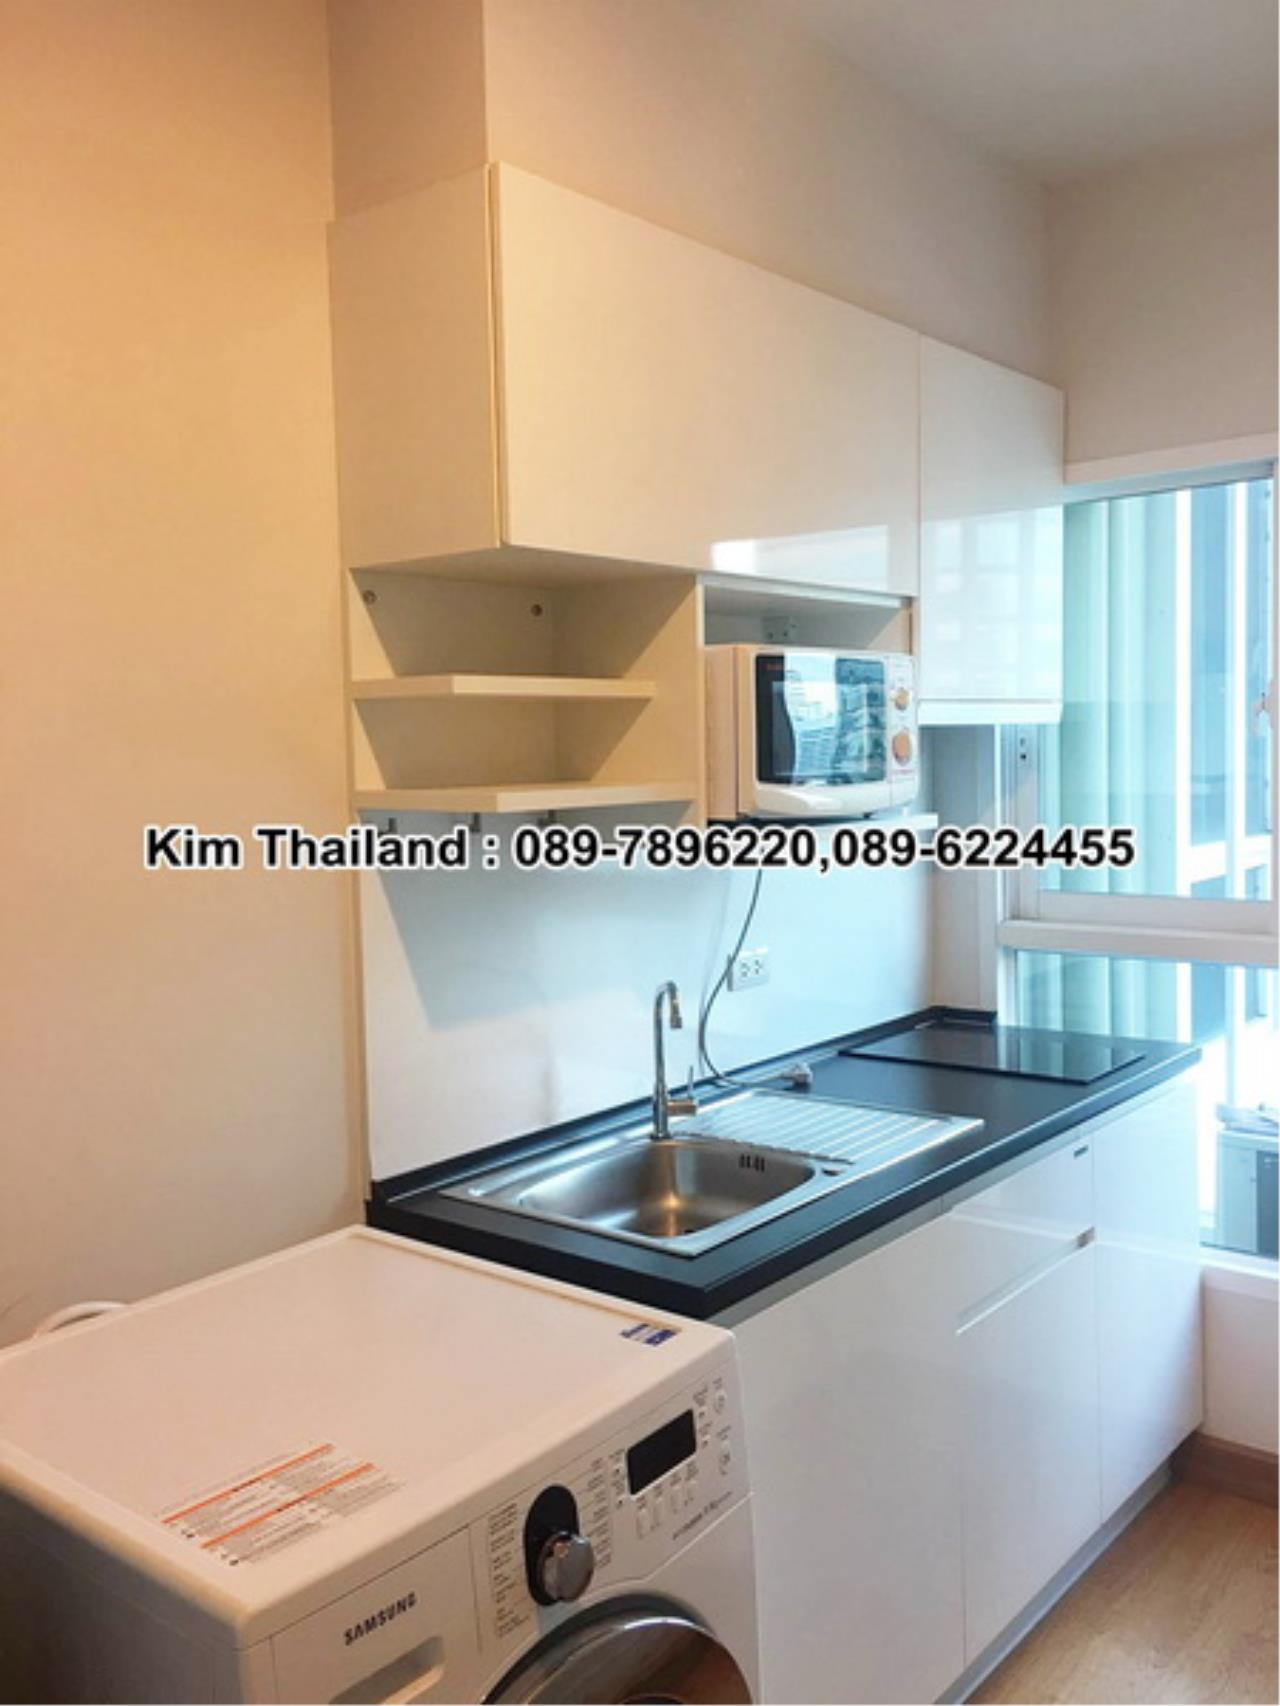 BKKcondorental Agency's For rent, Condo The Parkland Grand Asoke-Petchaburi., Area 35 sq.m. 1 bedroom. Rental 16,500 THB per month. 2